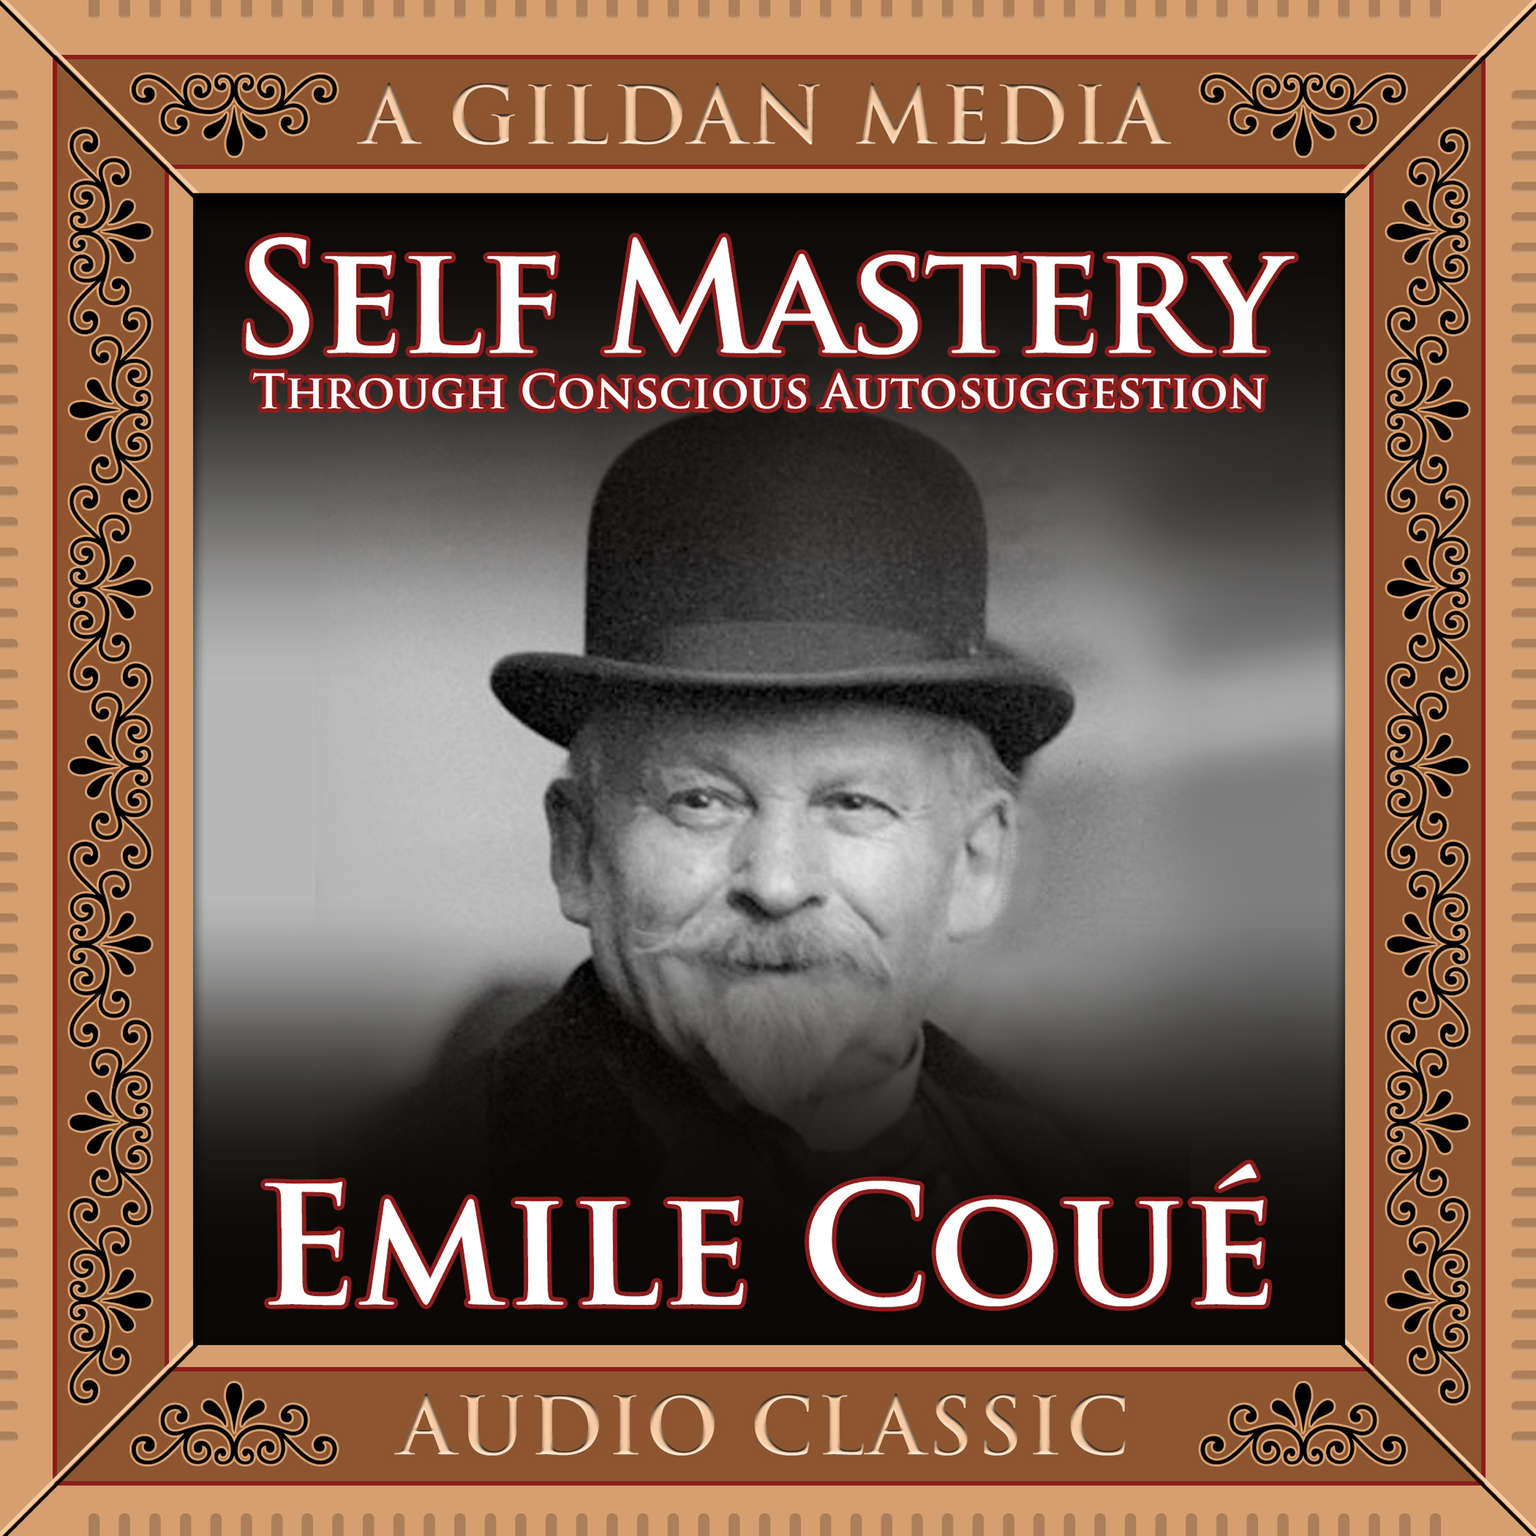 Printable Self Mastery through Conscious Autosuggestion Audiobook Cover Art